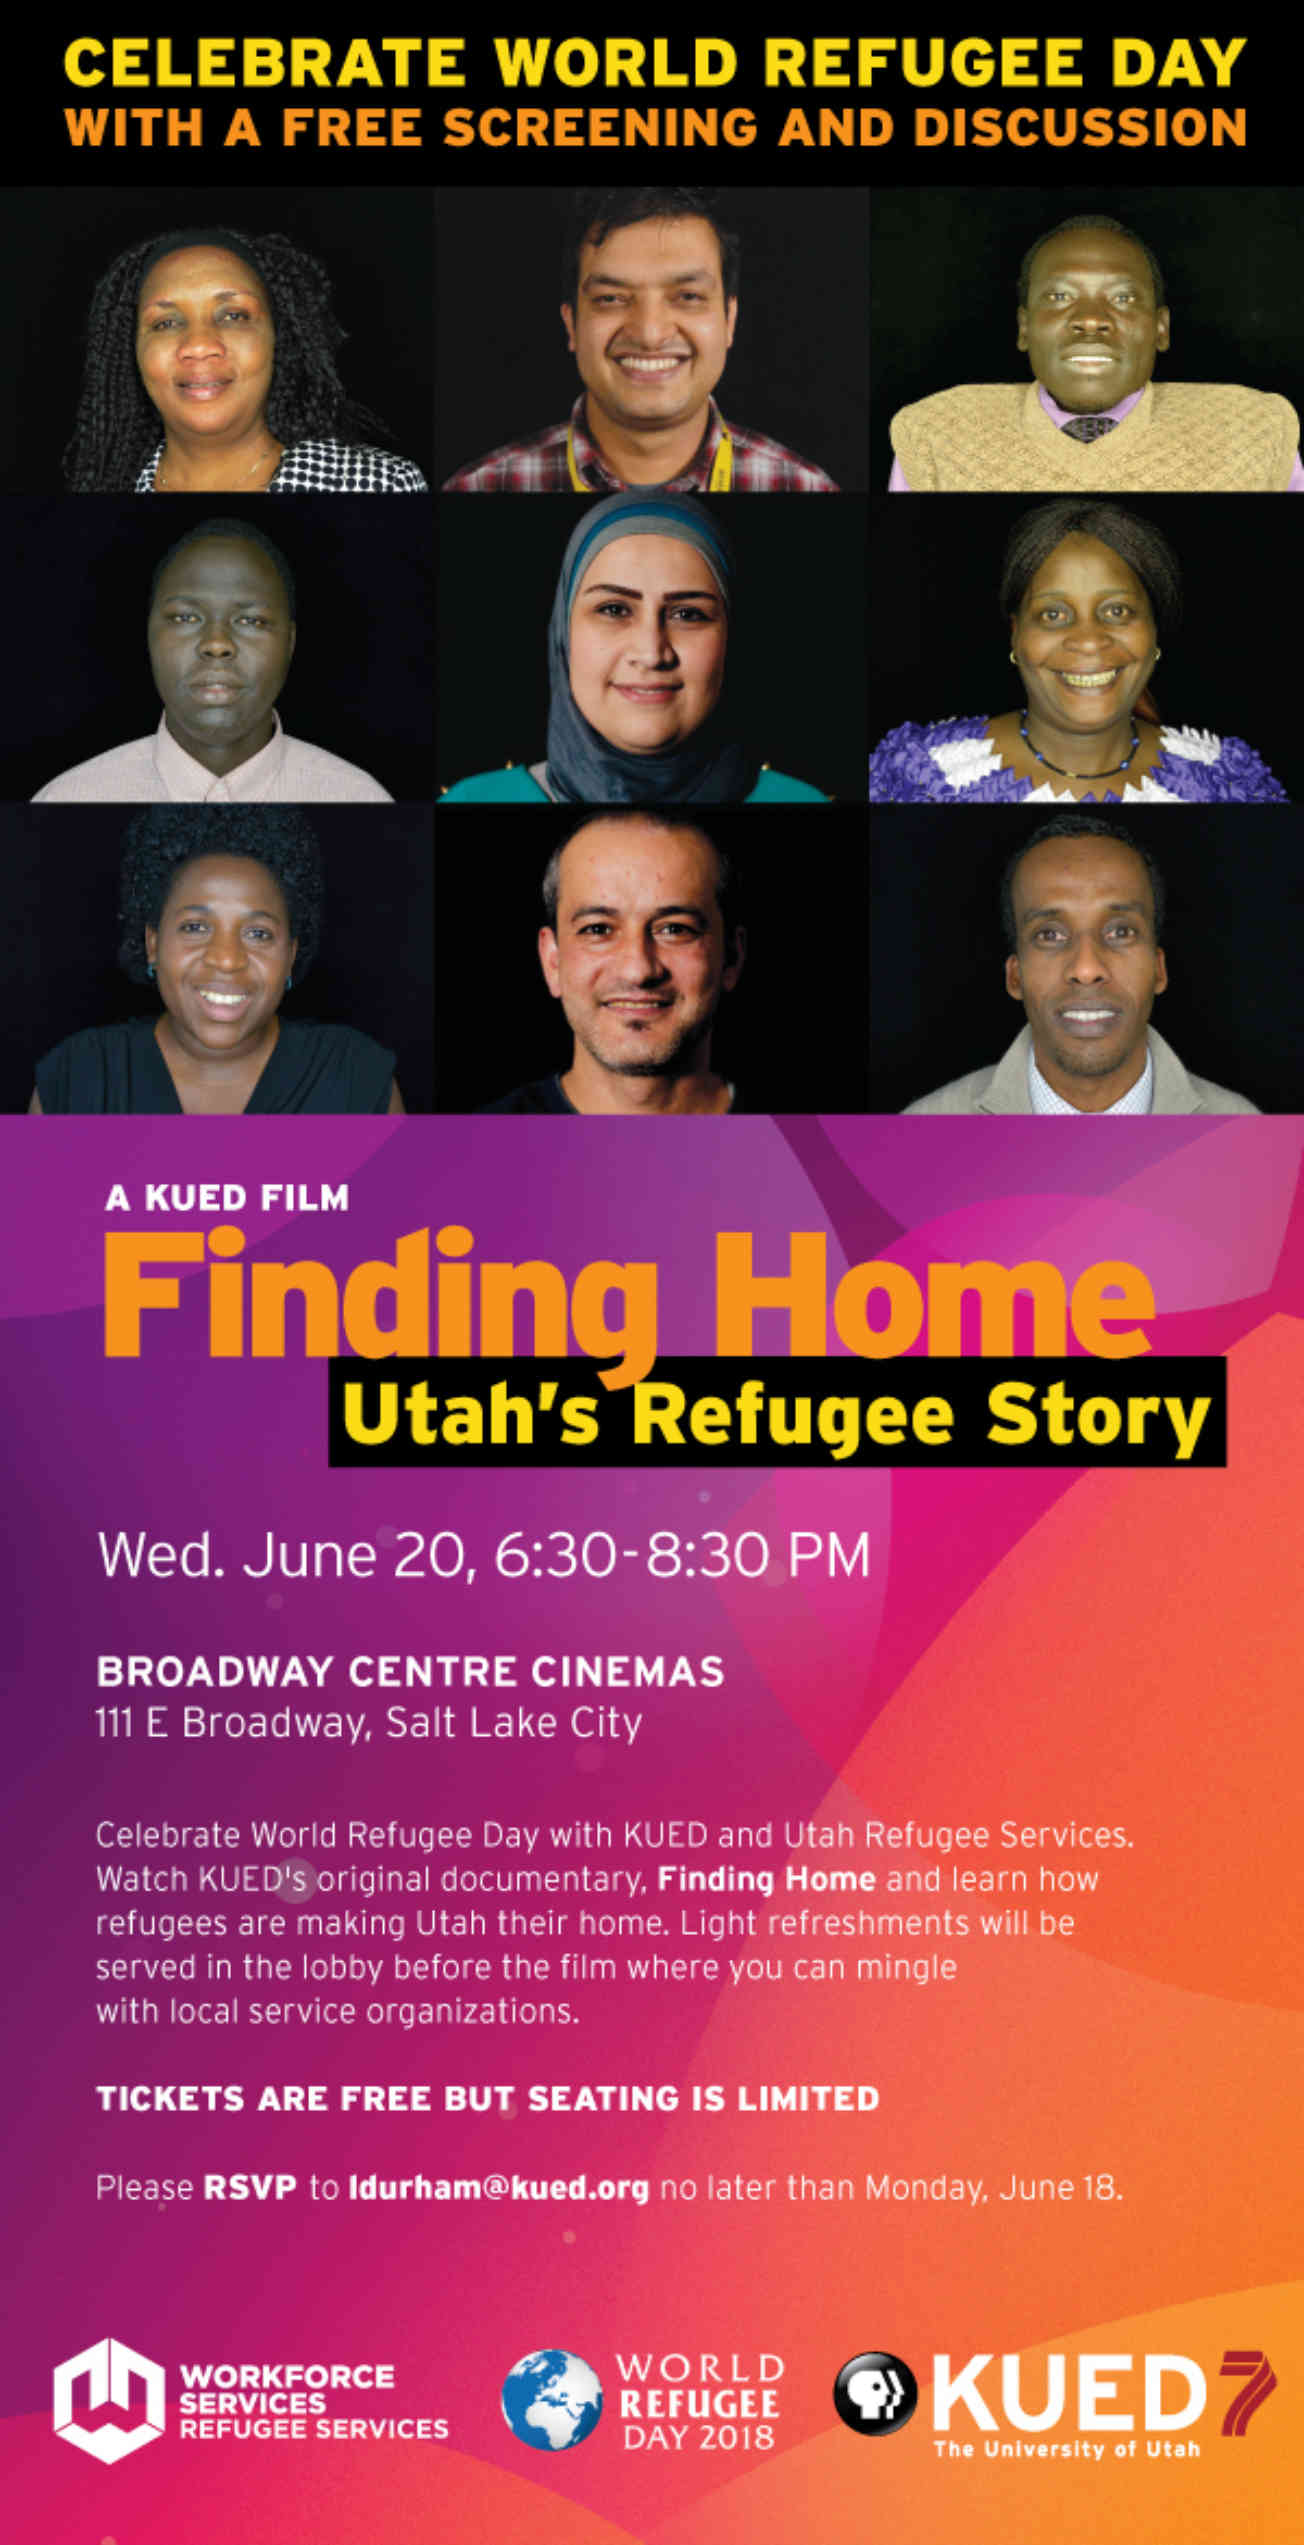 Finding Home Screening Invite